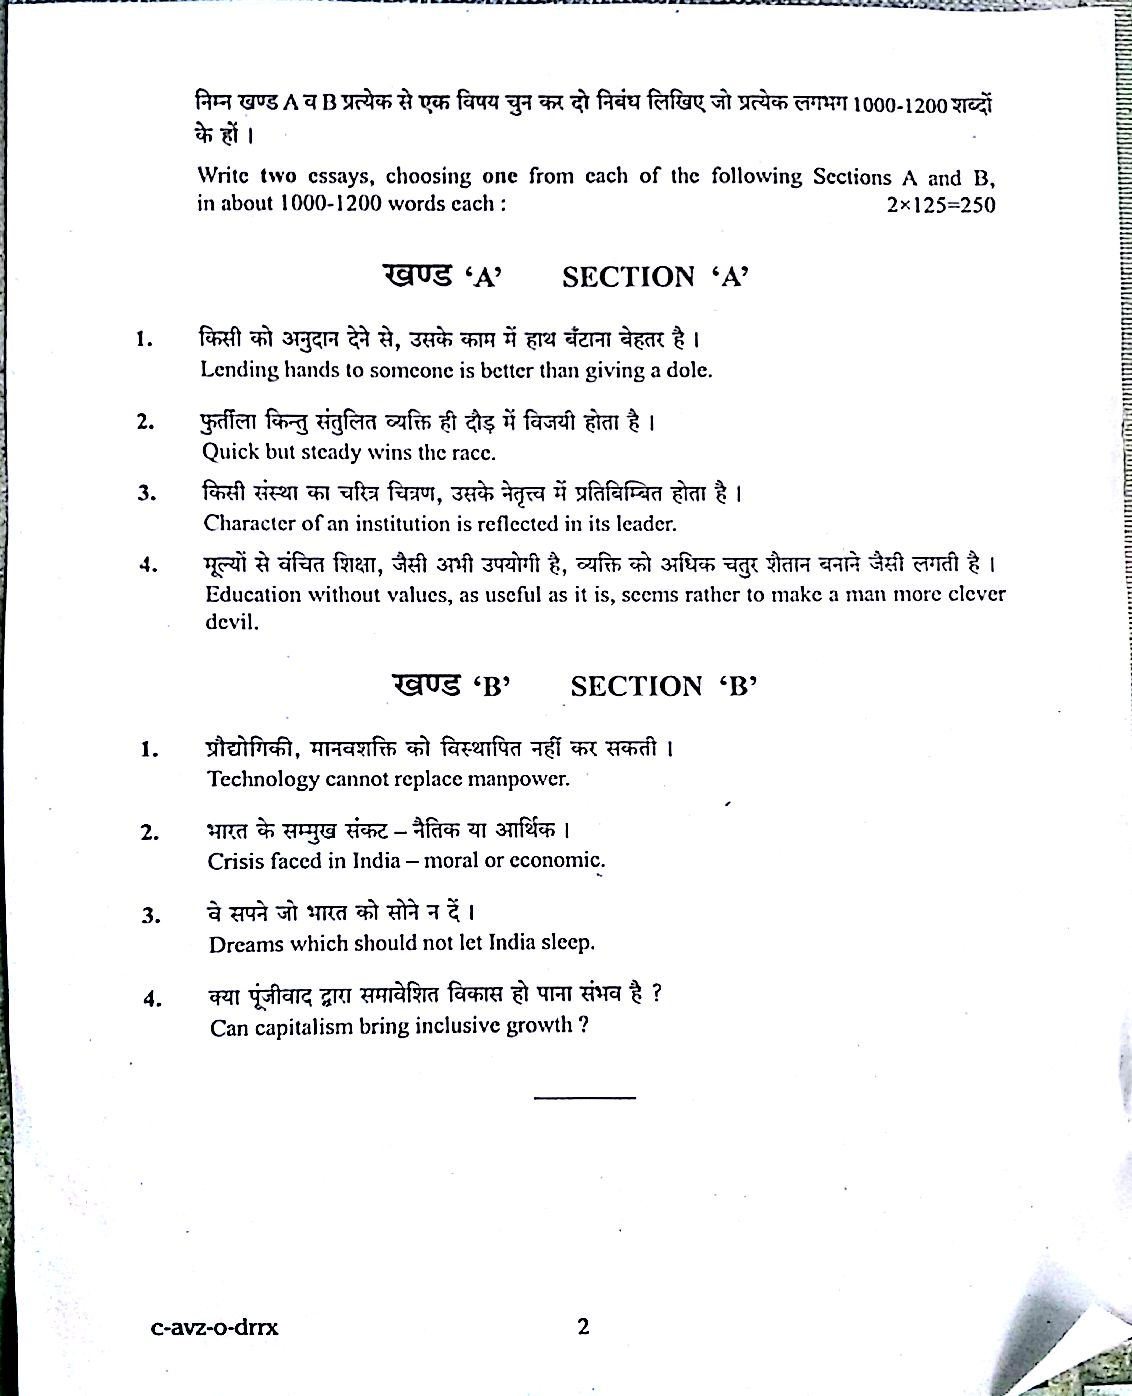 upsc mains 2015 question paper essay  essay 2